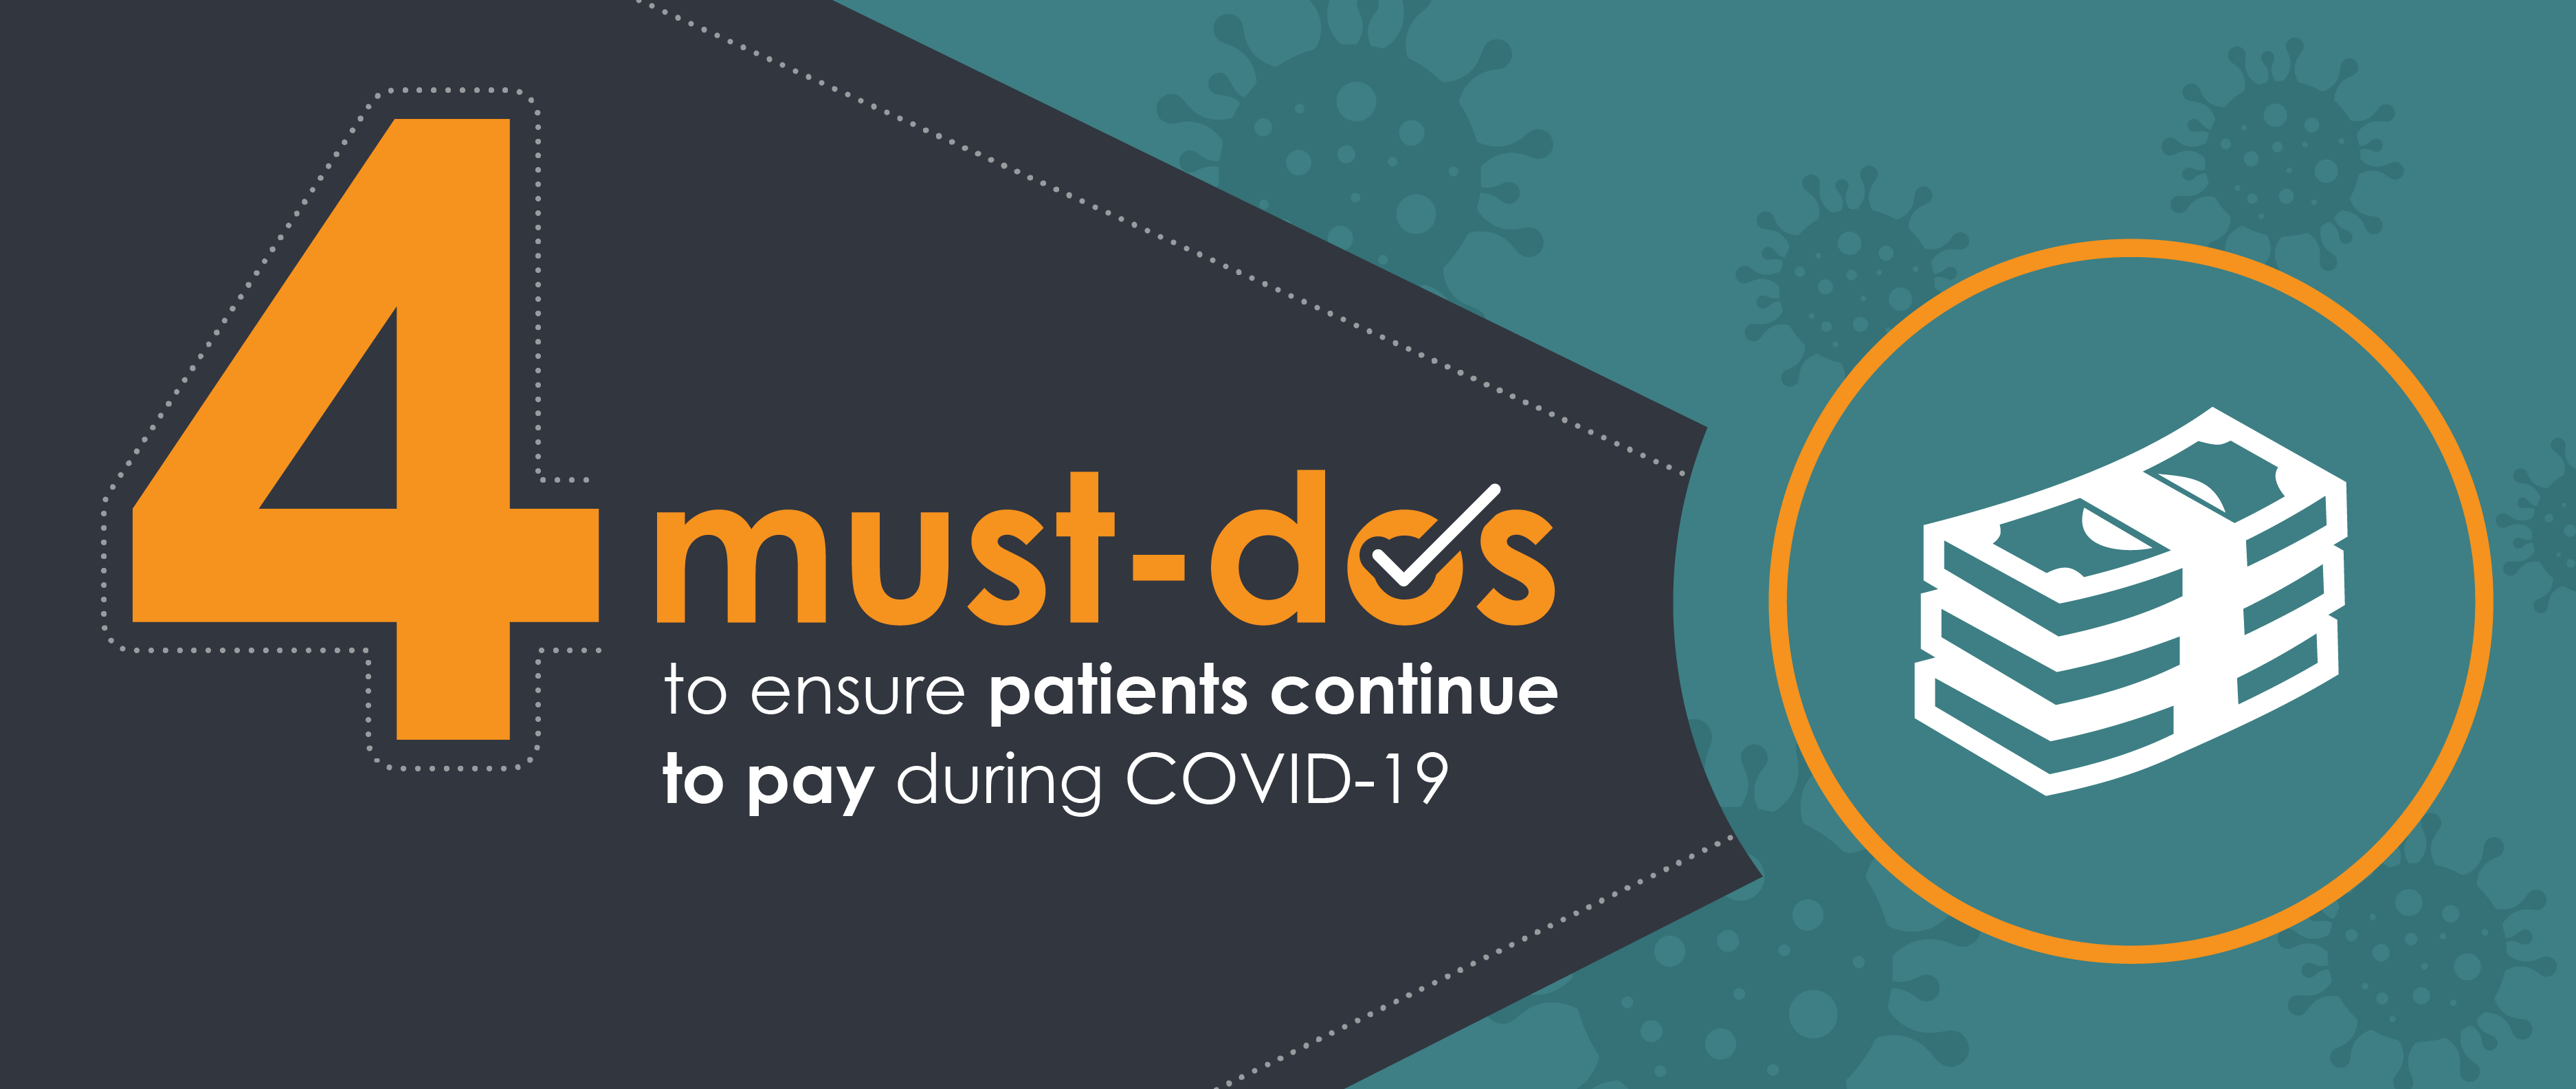 4 must-dos to ensure patients continue to pay during COVID-19 pandemic